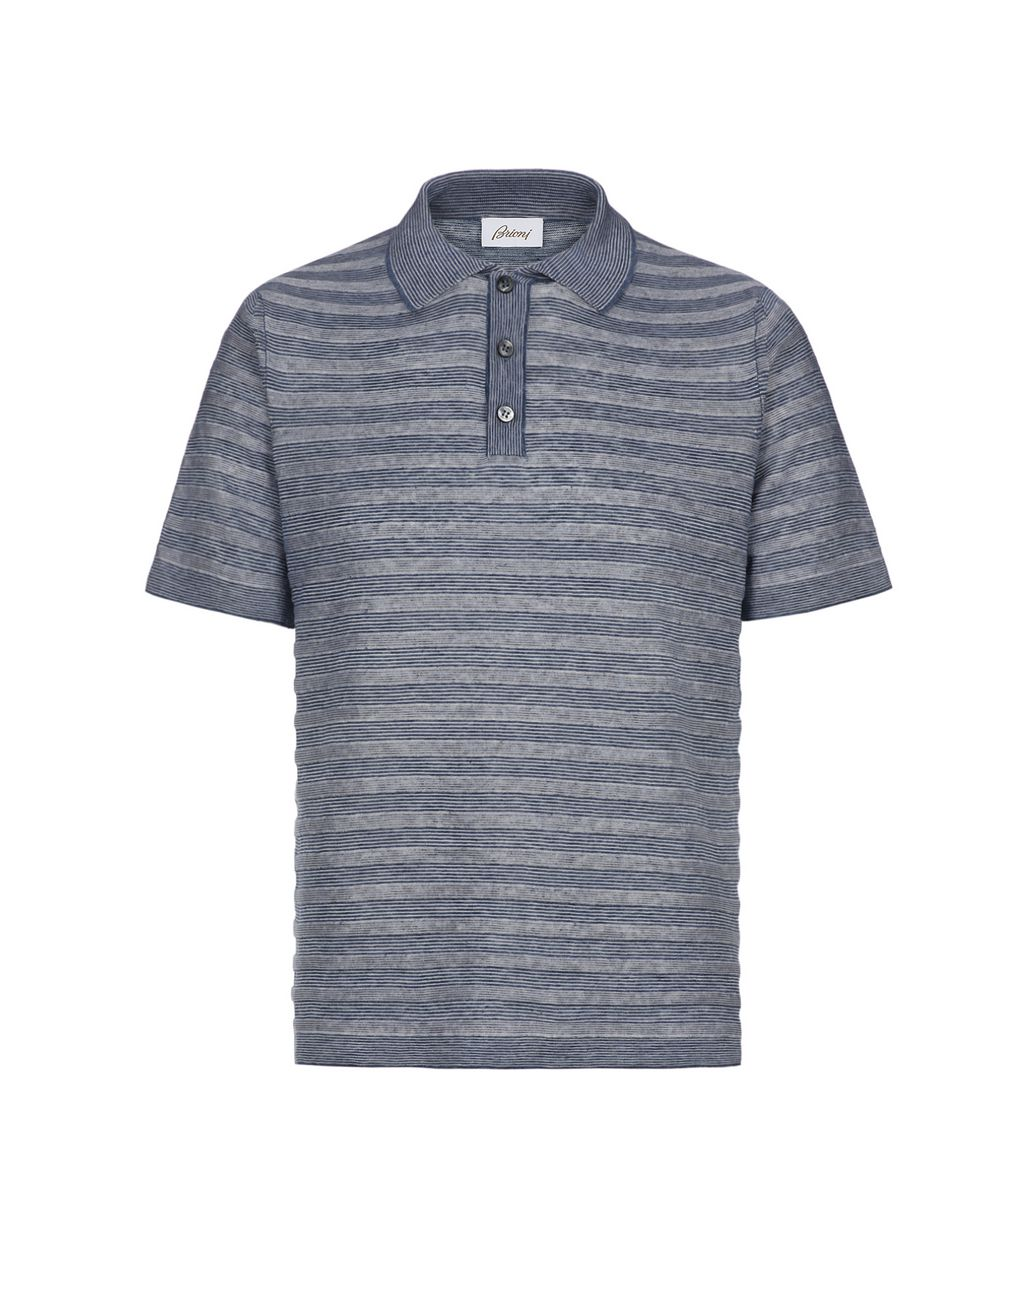 5c36d6b0cddf BRIONI Blue and White Texturized Stripes Polo Shirt T-Shirts   Polos Man f